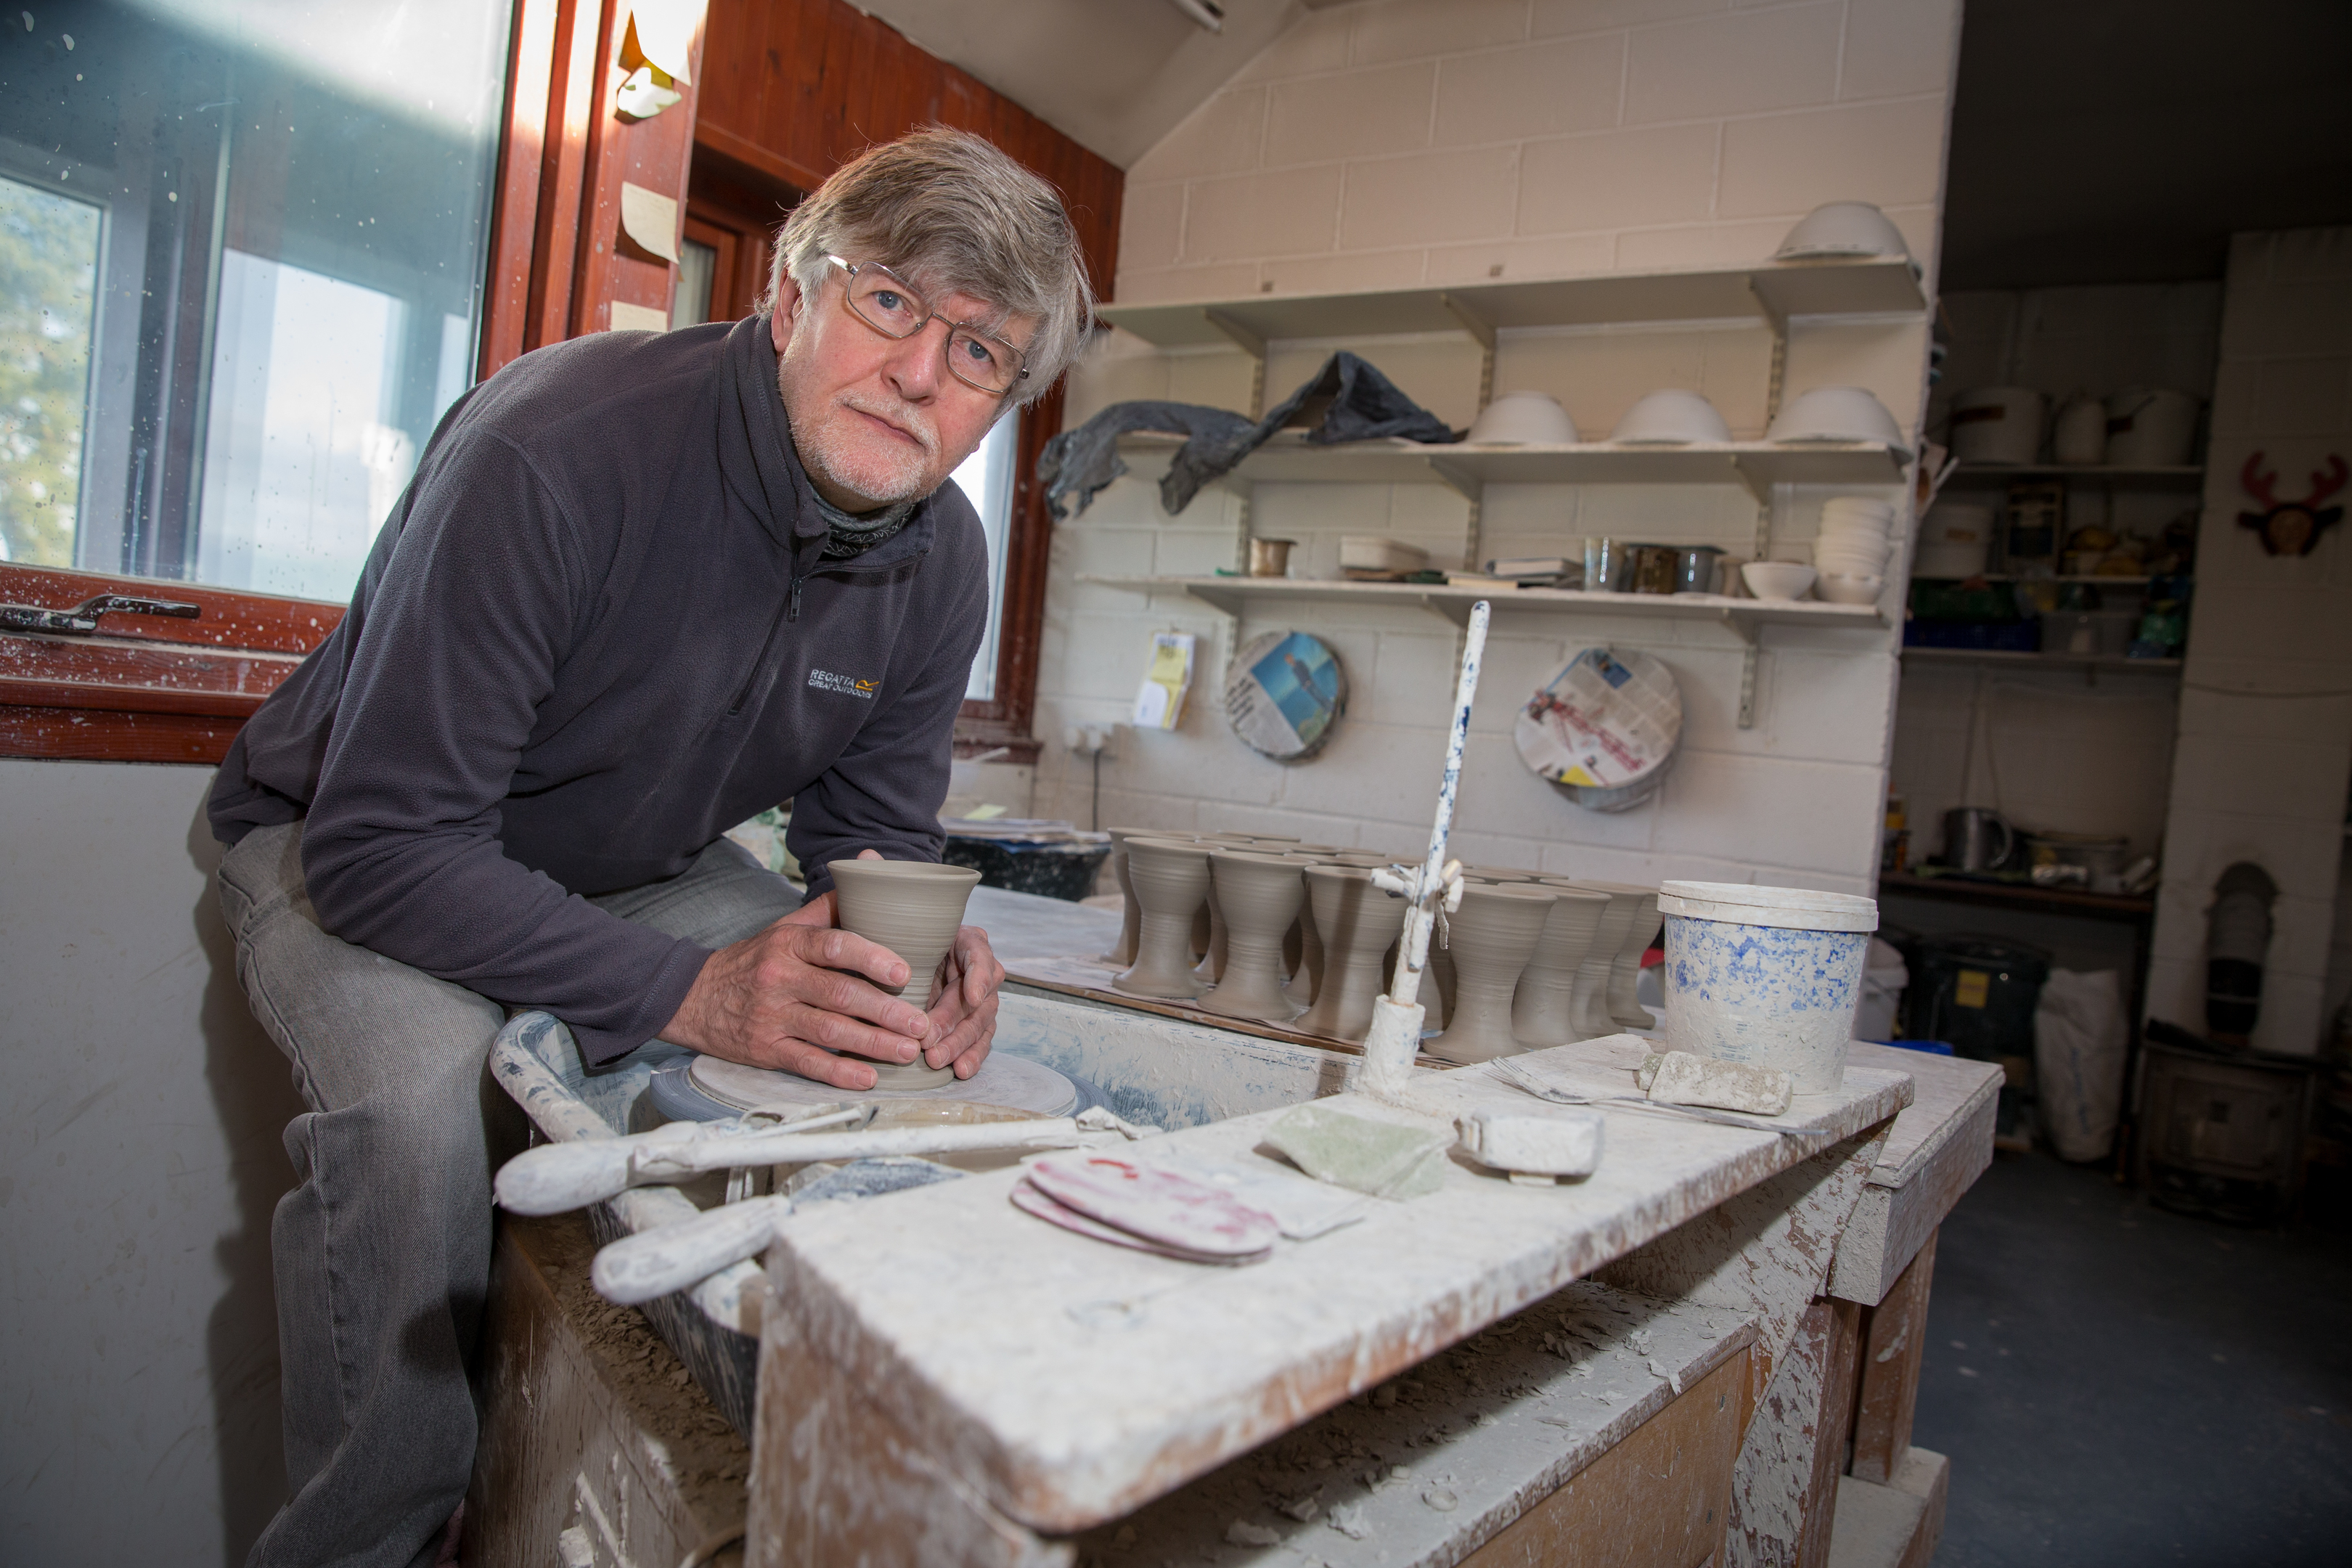 George Young of St Andrews Pottery who will be affected by the ongoing LPG gas supply problem in North East Fife as his Kiln is gas powered.